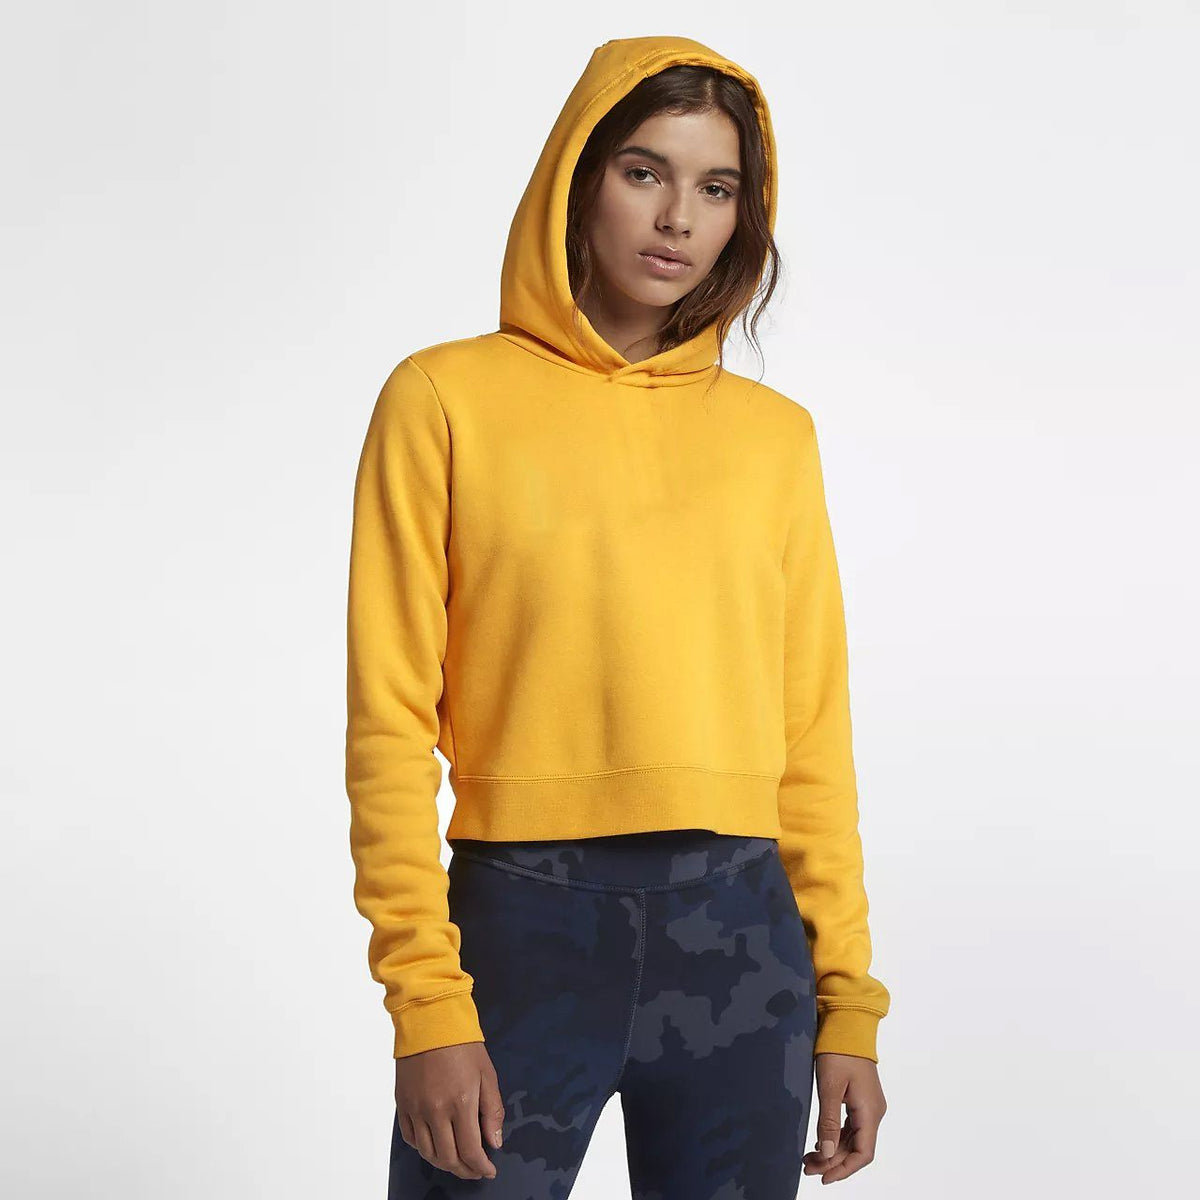 Tally Weijl Women's Minor Fault Fleece Cropped Hoodie Minor Fault SRK Yellow S